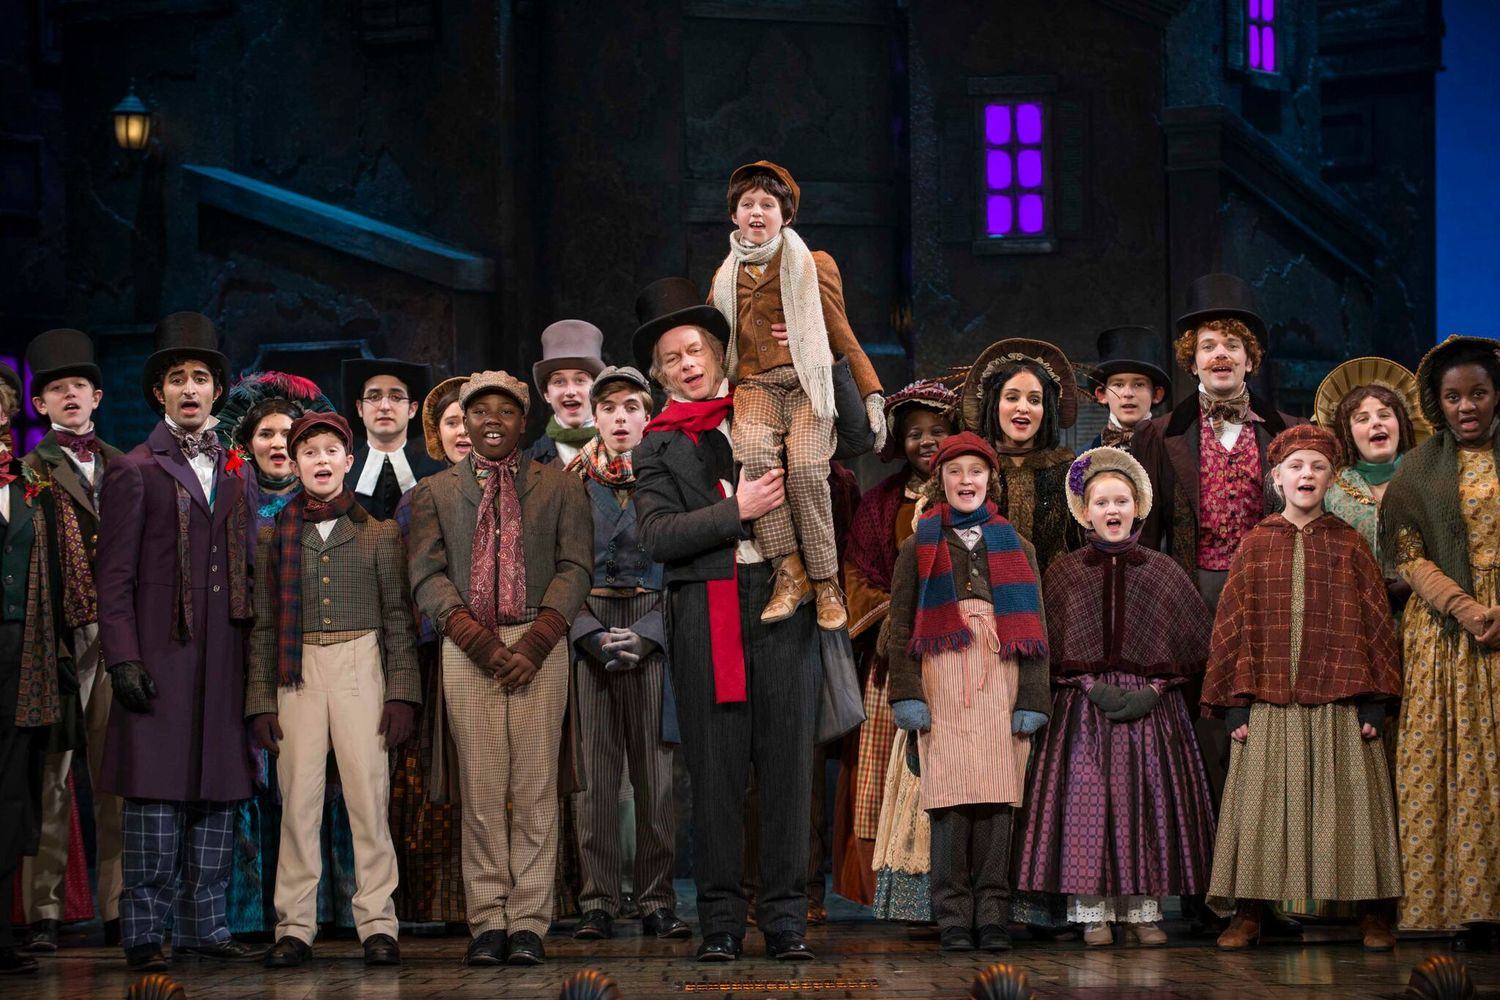 BWW Review: A CHRISTMAS CAROL Spreads Tidings of Comfort & Joy at Milwaukee Repertory Theater